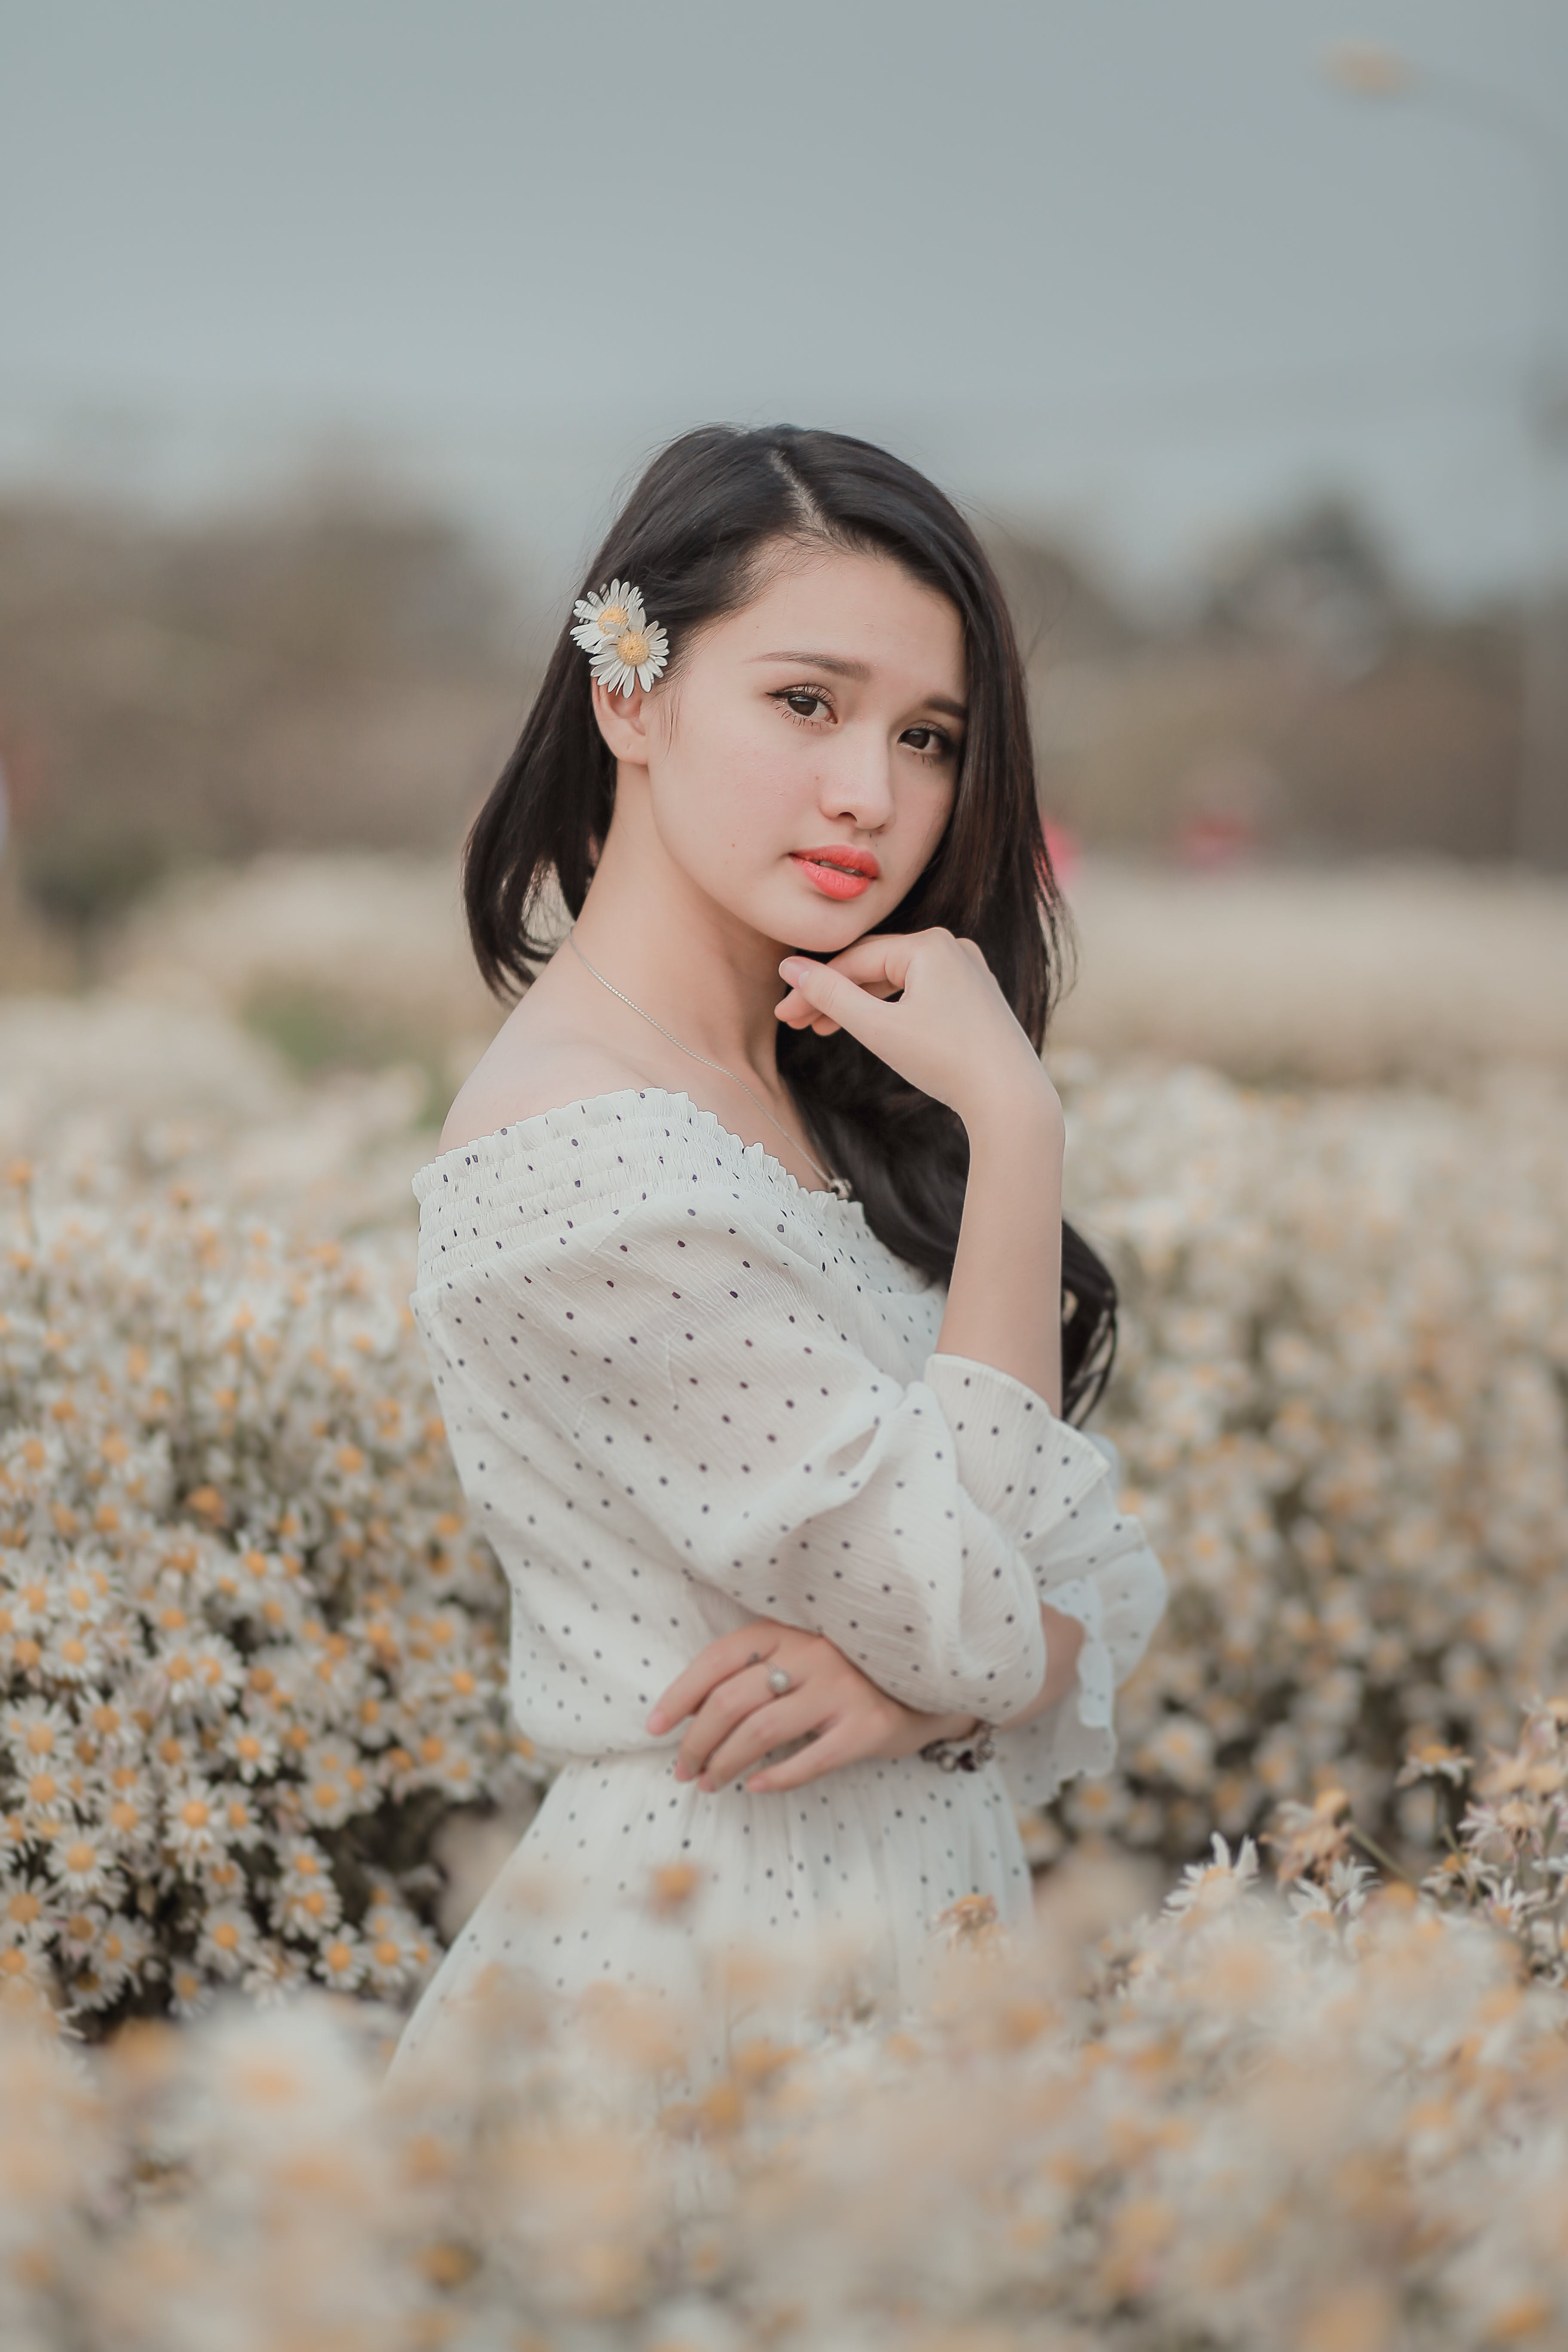 Free stock photo of girl, smiling, vietnamese, white daisies